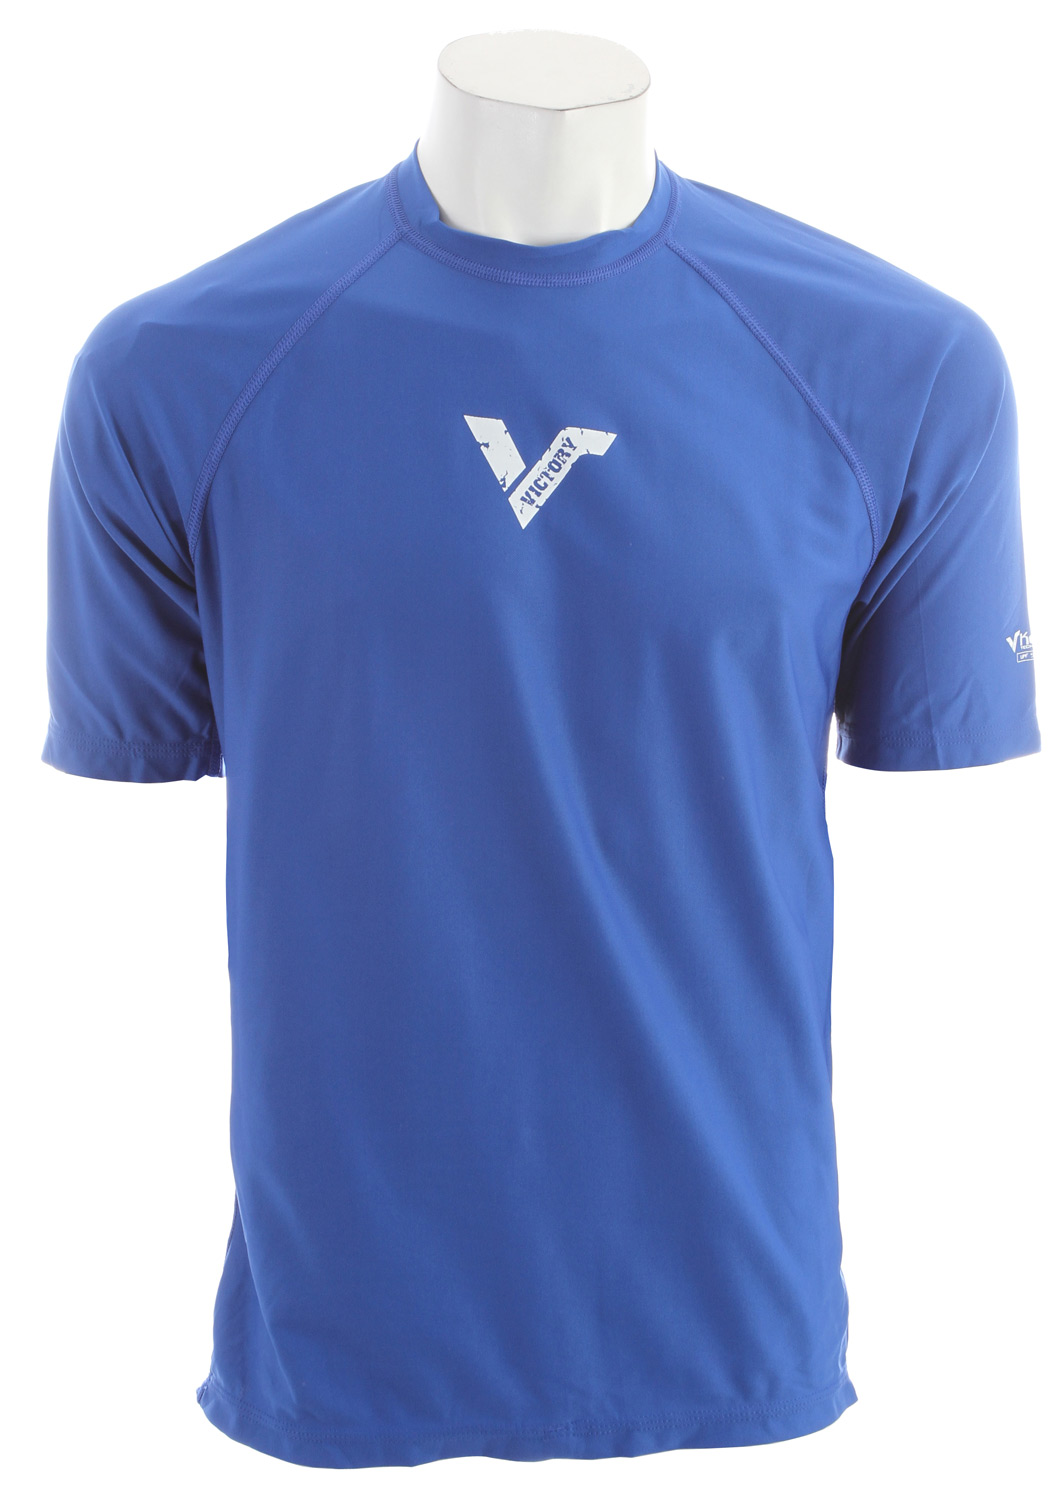 Key Features of the Victory Koredry Loose Fit Rash Guard: They feature flatlock stitching Raglan cut sleeves for superior fit and movement Triple needle cover stitch hems. - $25.95